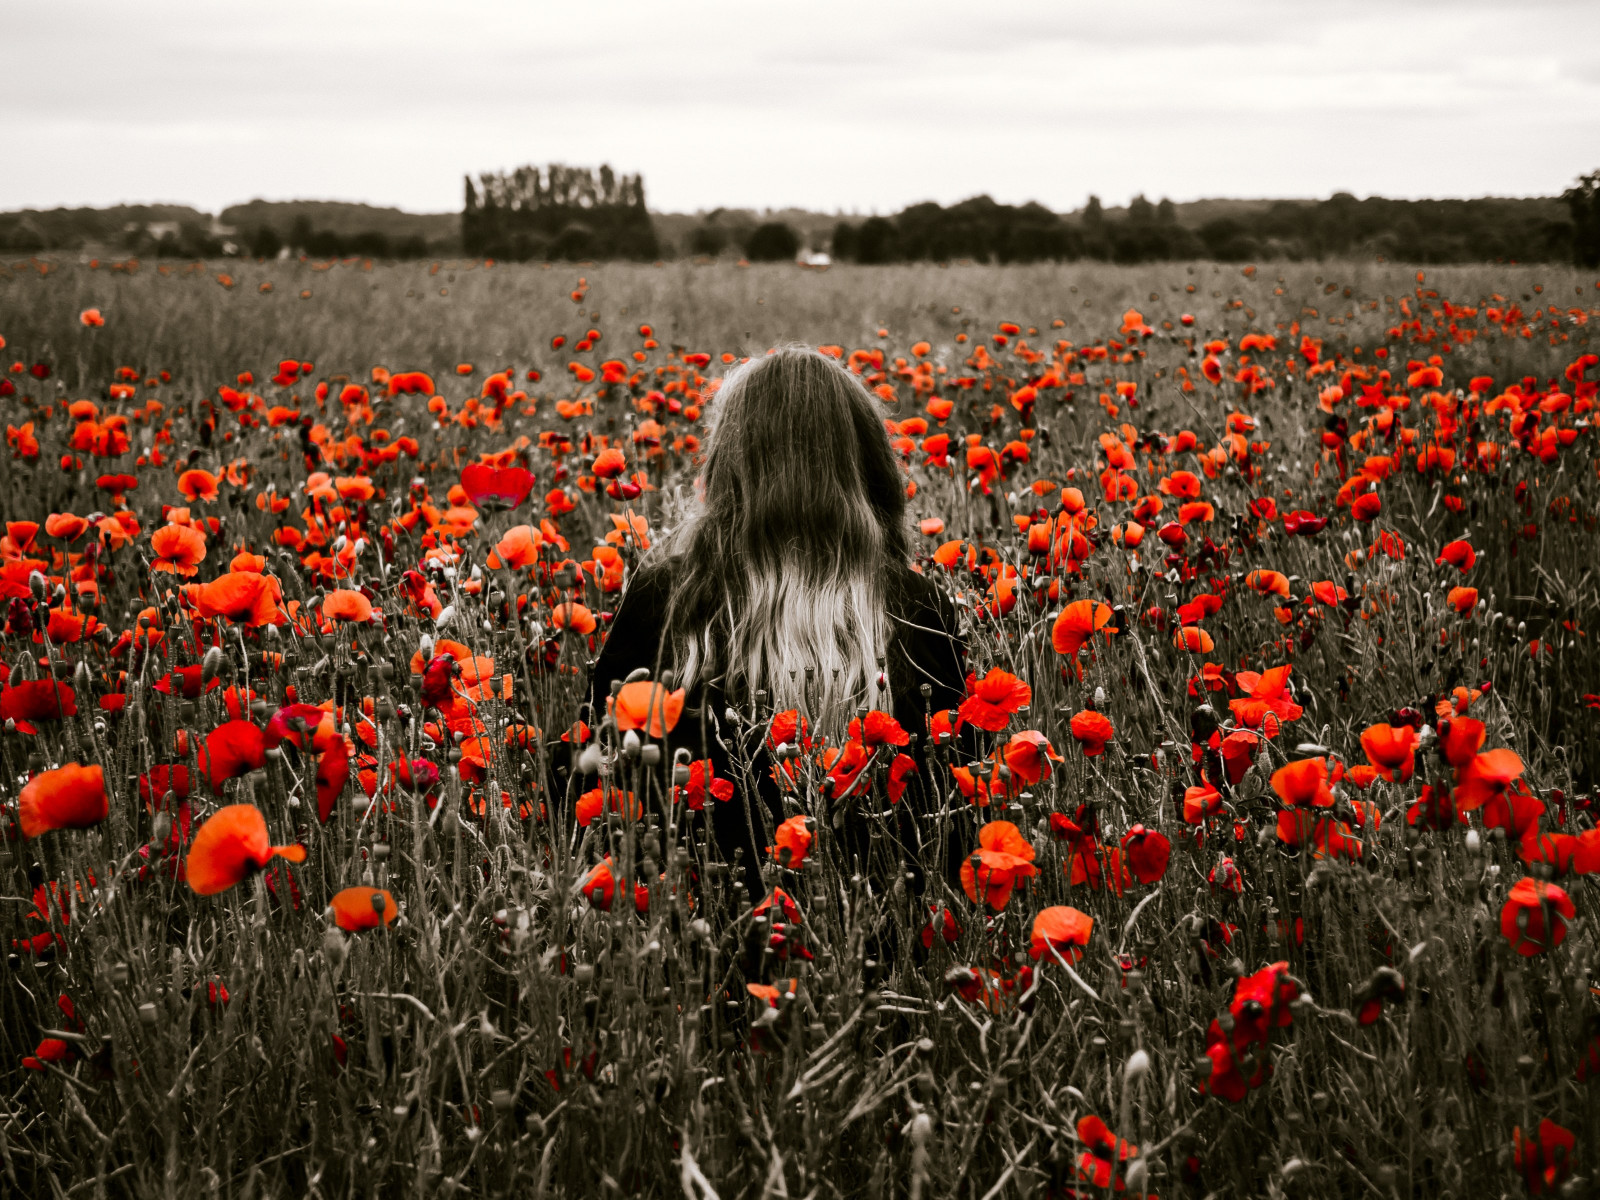 Girl in the field with red poppies wallpaper 1600x1200